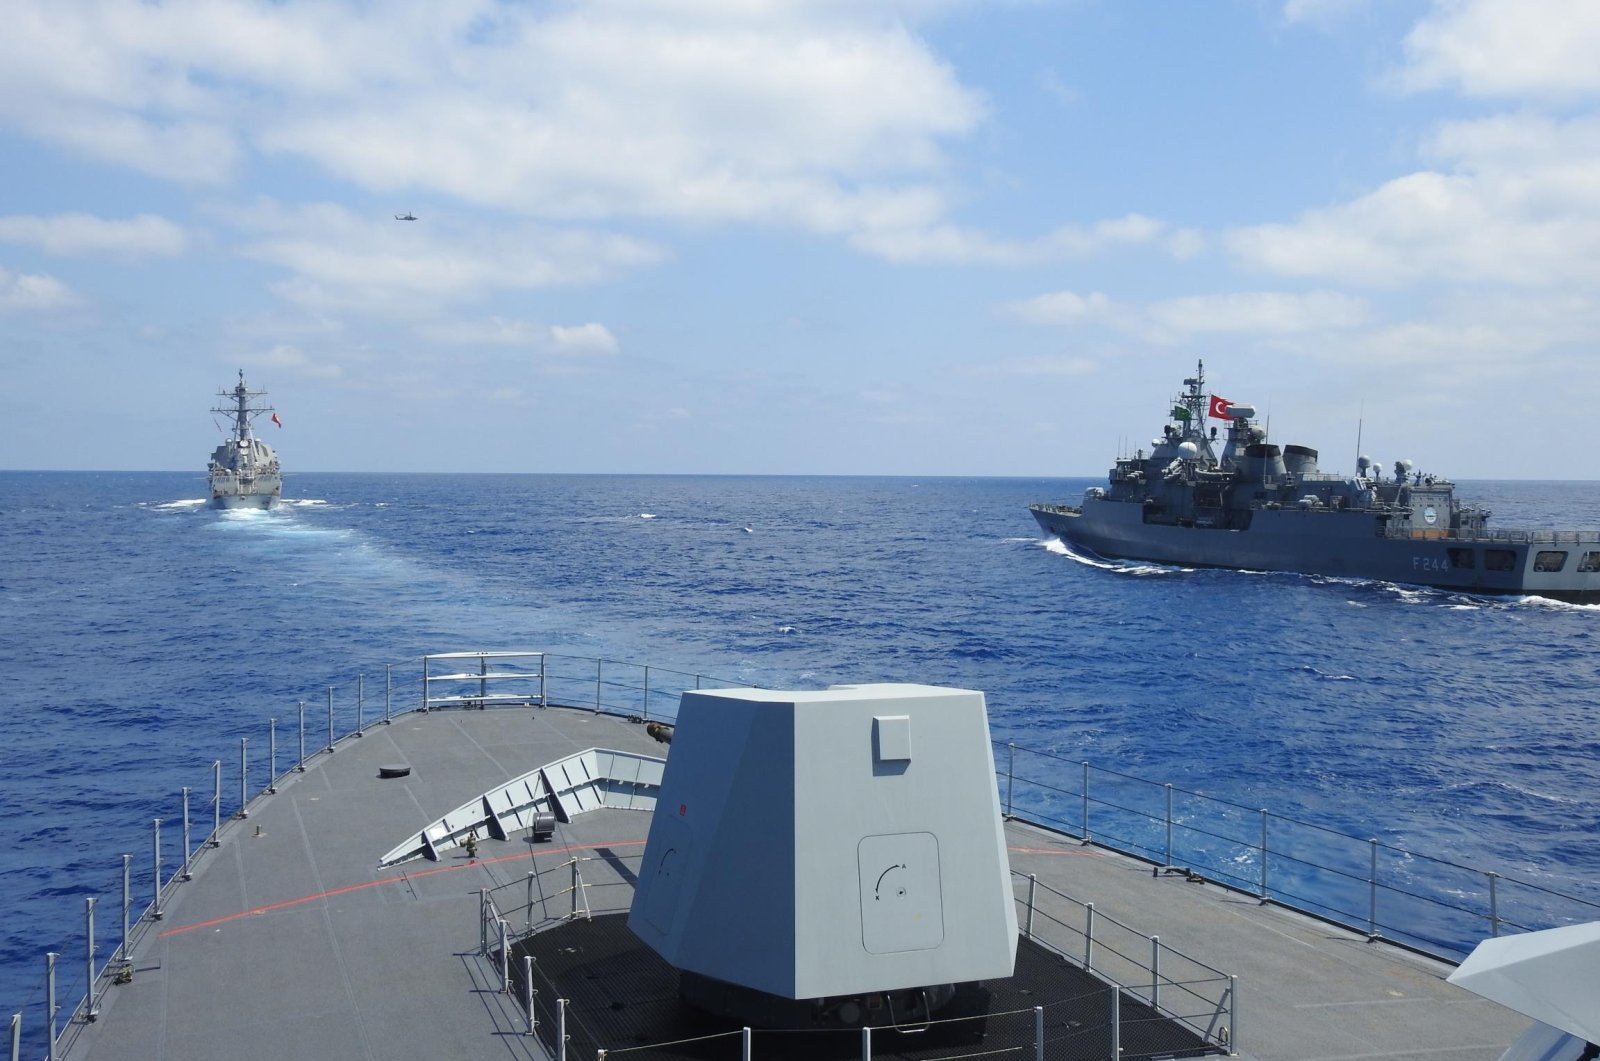 Turkey's TCG Barbaros frigate and TCG Burgazada corvette and the USS Winston S. Churchill conduct naval training exercises in the Eastern Mediterranean on Aug. 26, 2020. (AA Photo)